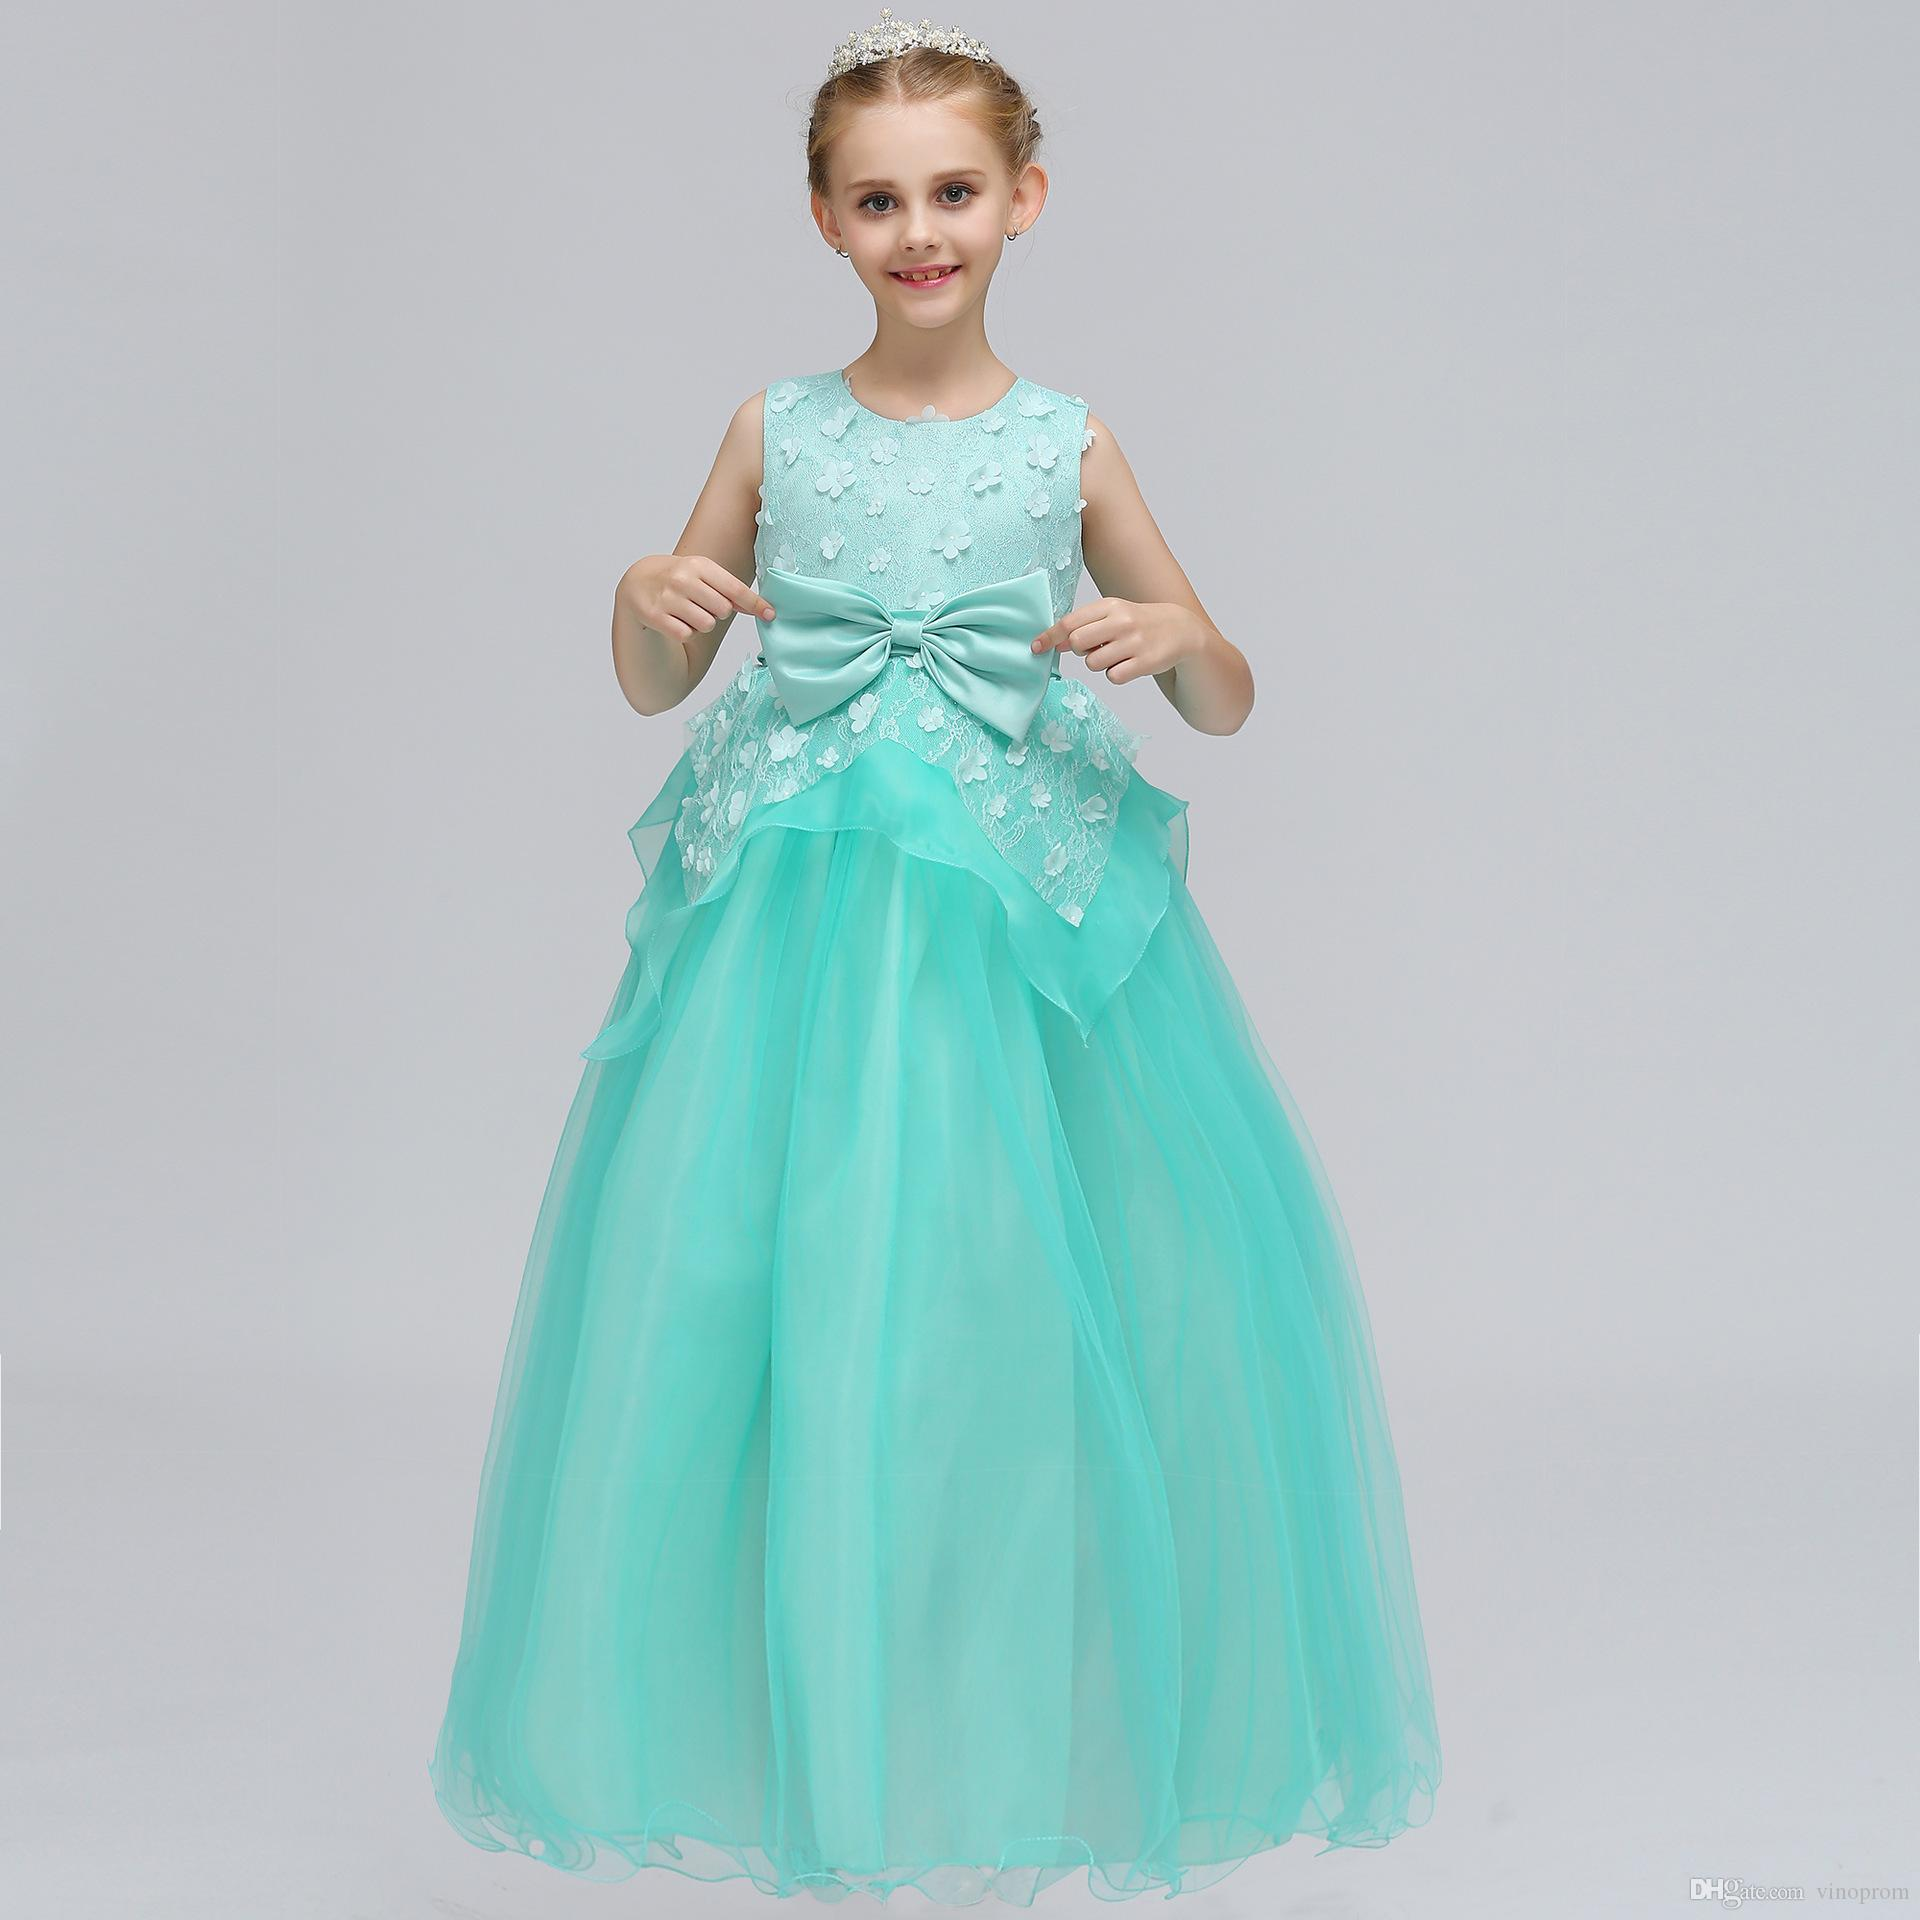 2019 Cheap Royal Blue Flower Girls Dresses Toddler Kids Flower Girl Dress For Weddings Appliques Girls Pageant Prom Gowns